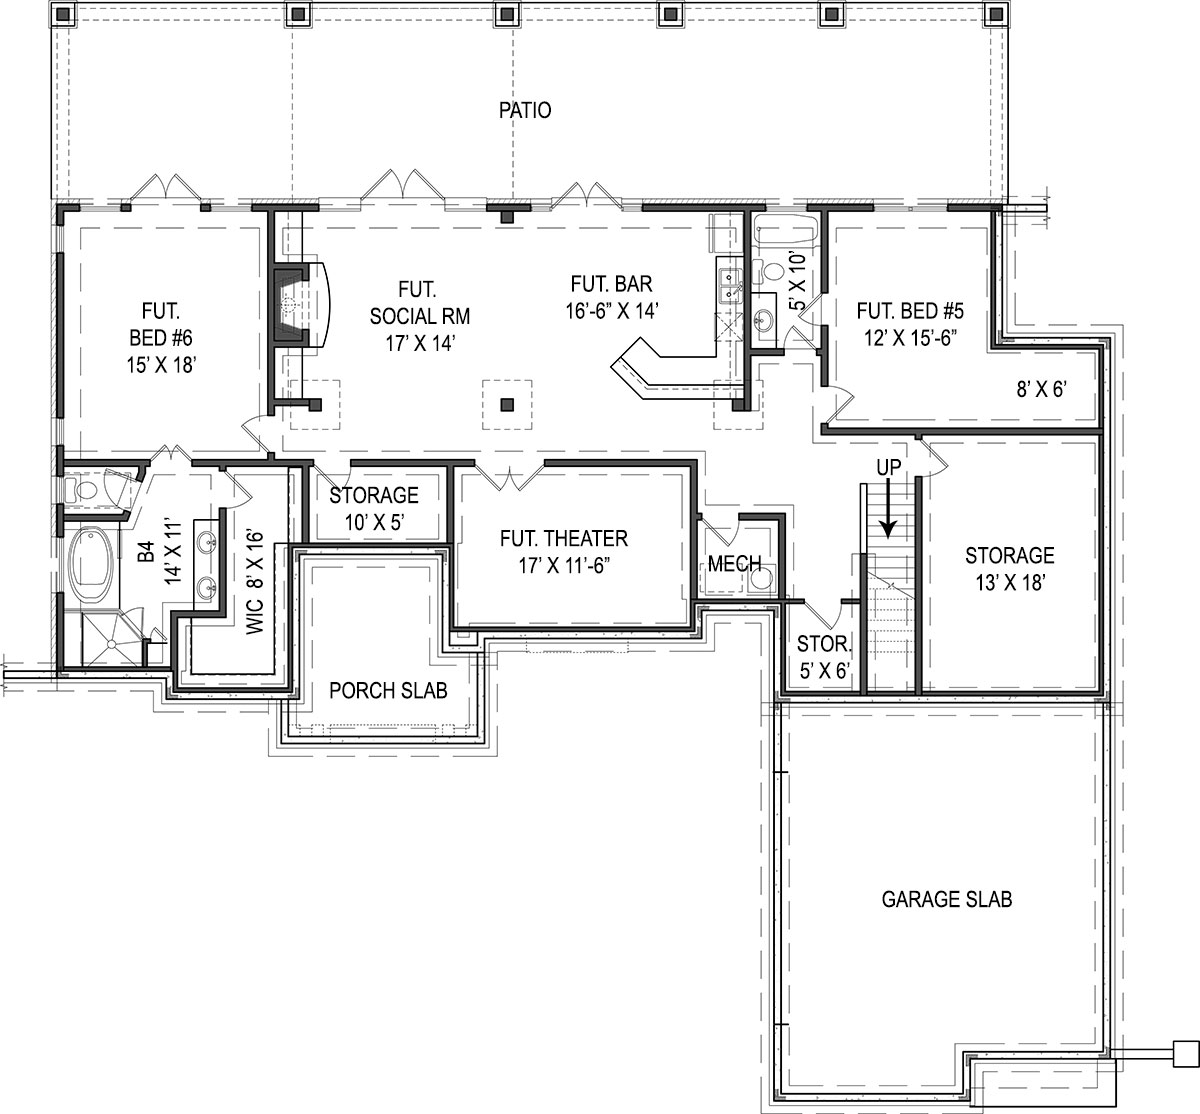 House Plans With Basement 1500 square feet house plans ranch house plans with walkout basement split bedroom house Basement Floor Plan